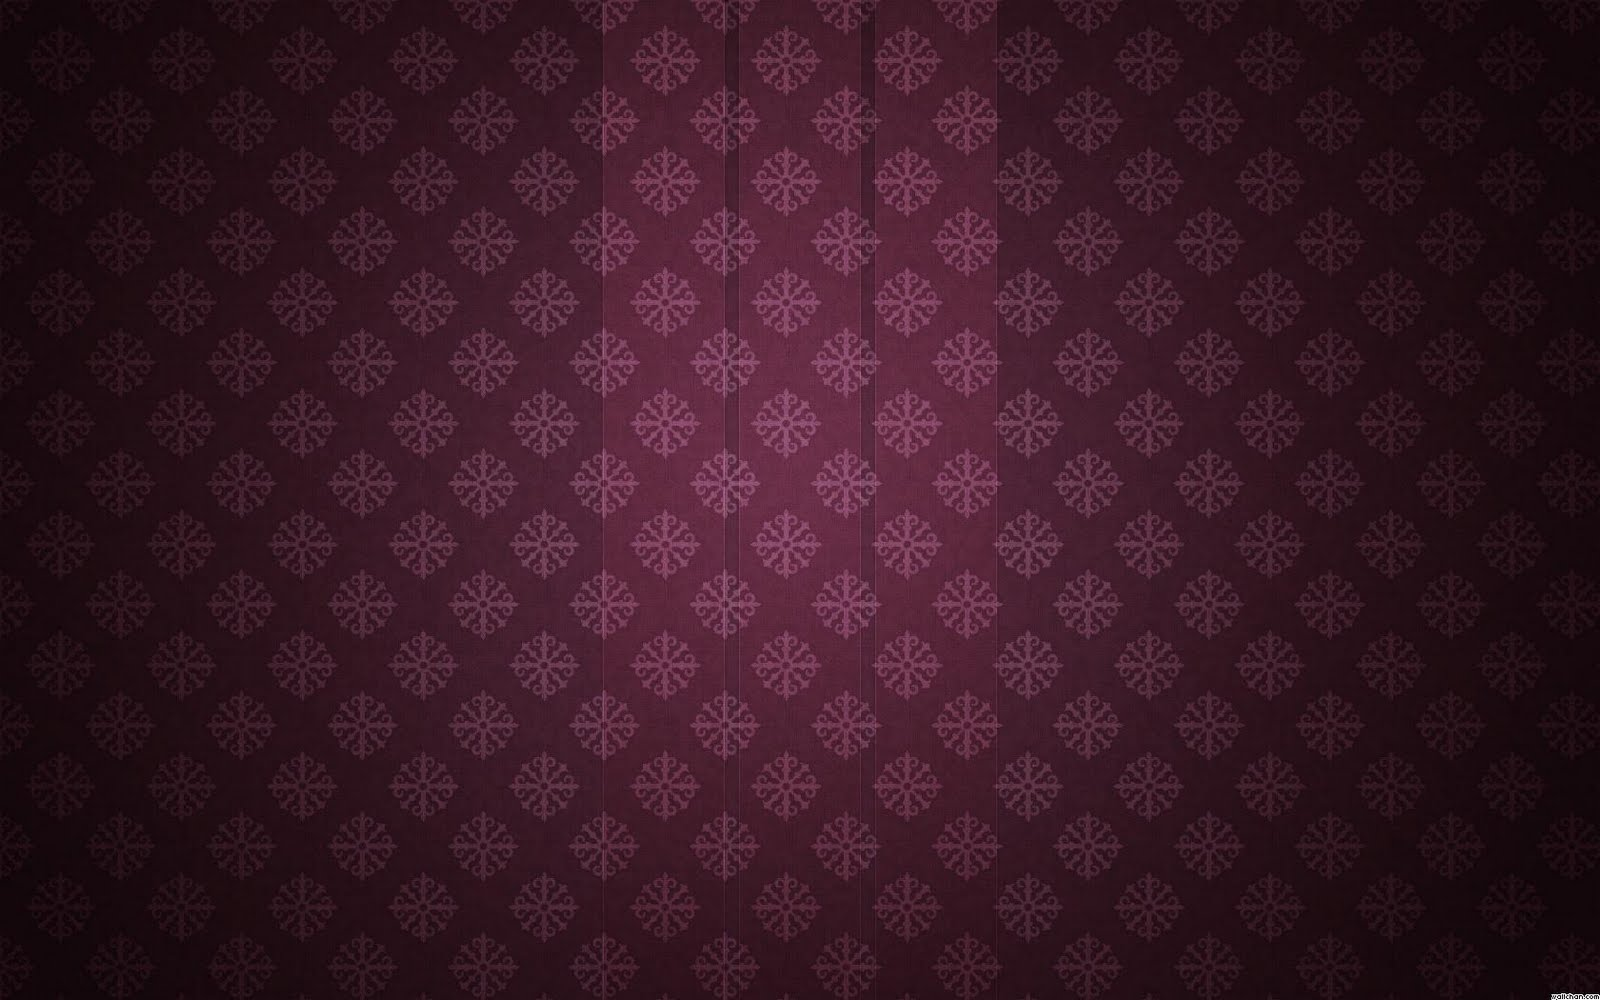 http://3.bp.blogspot.com/-4nMzRd7h7EQ/TwB40cUbLcI/AAAAAAAACcI/Hu5qLgCVI1g/s1600/wallpaper-patterns-HD-wallpaper-792523.jpg